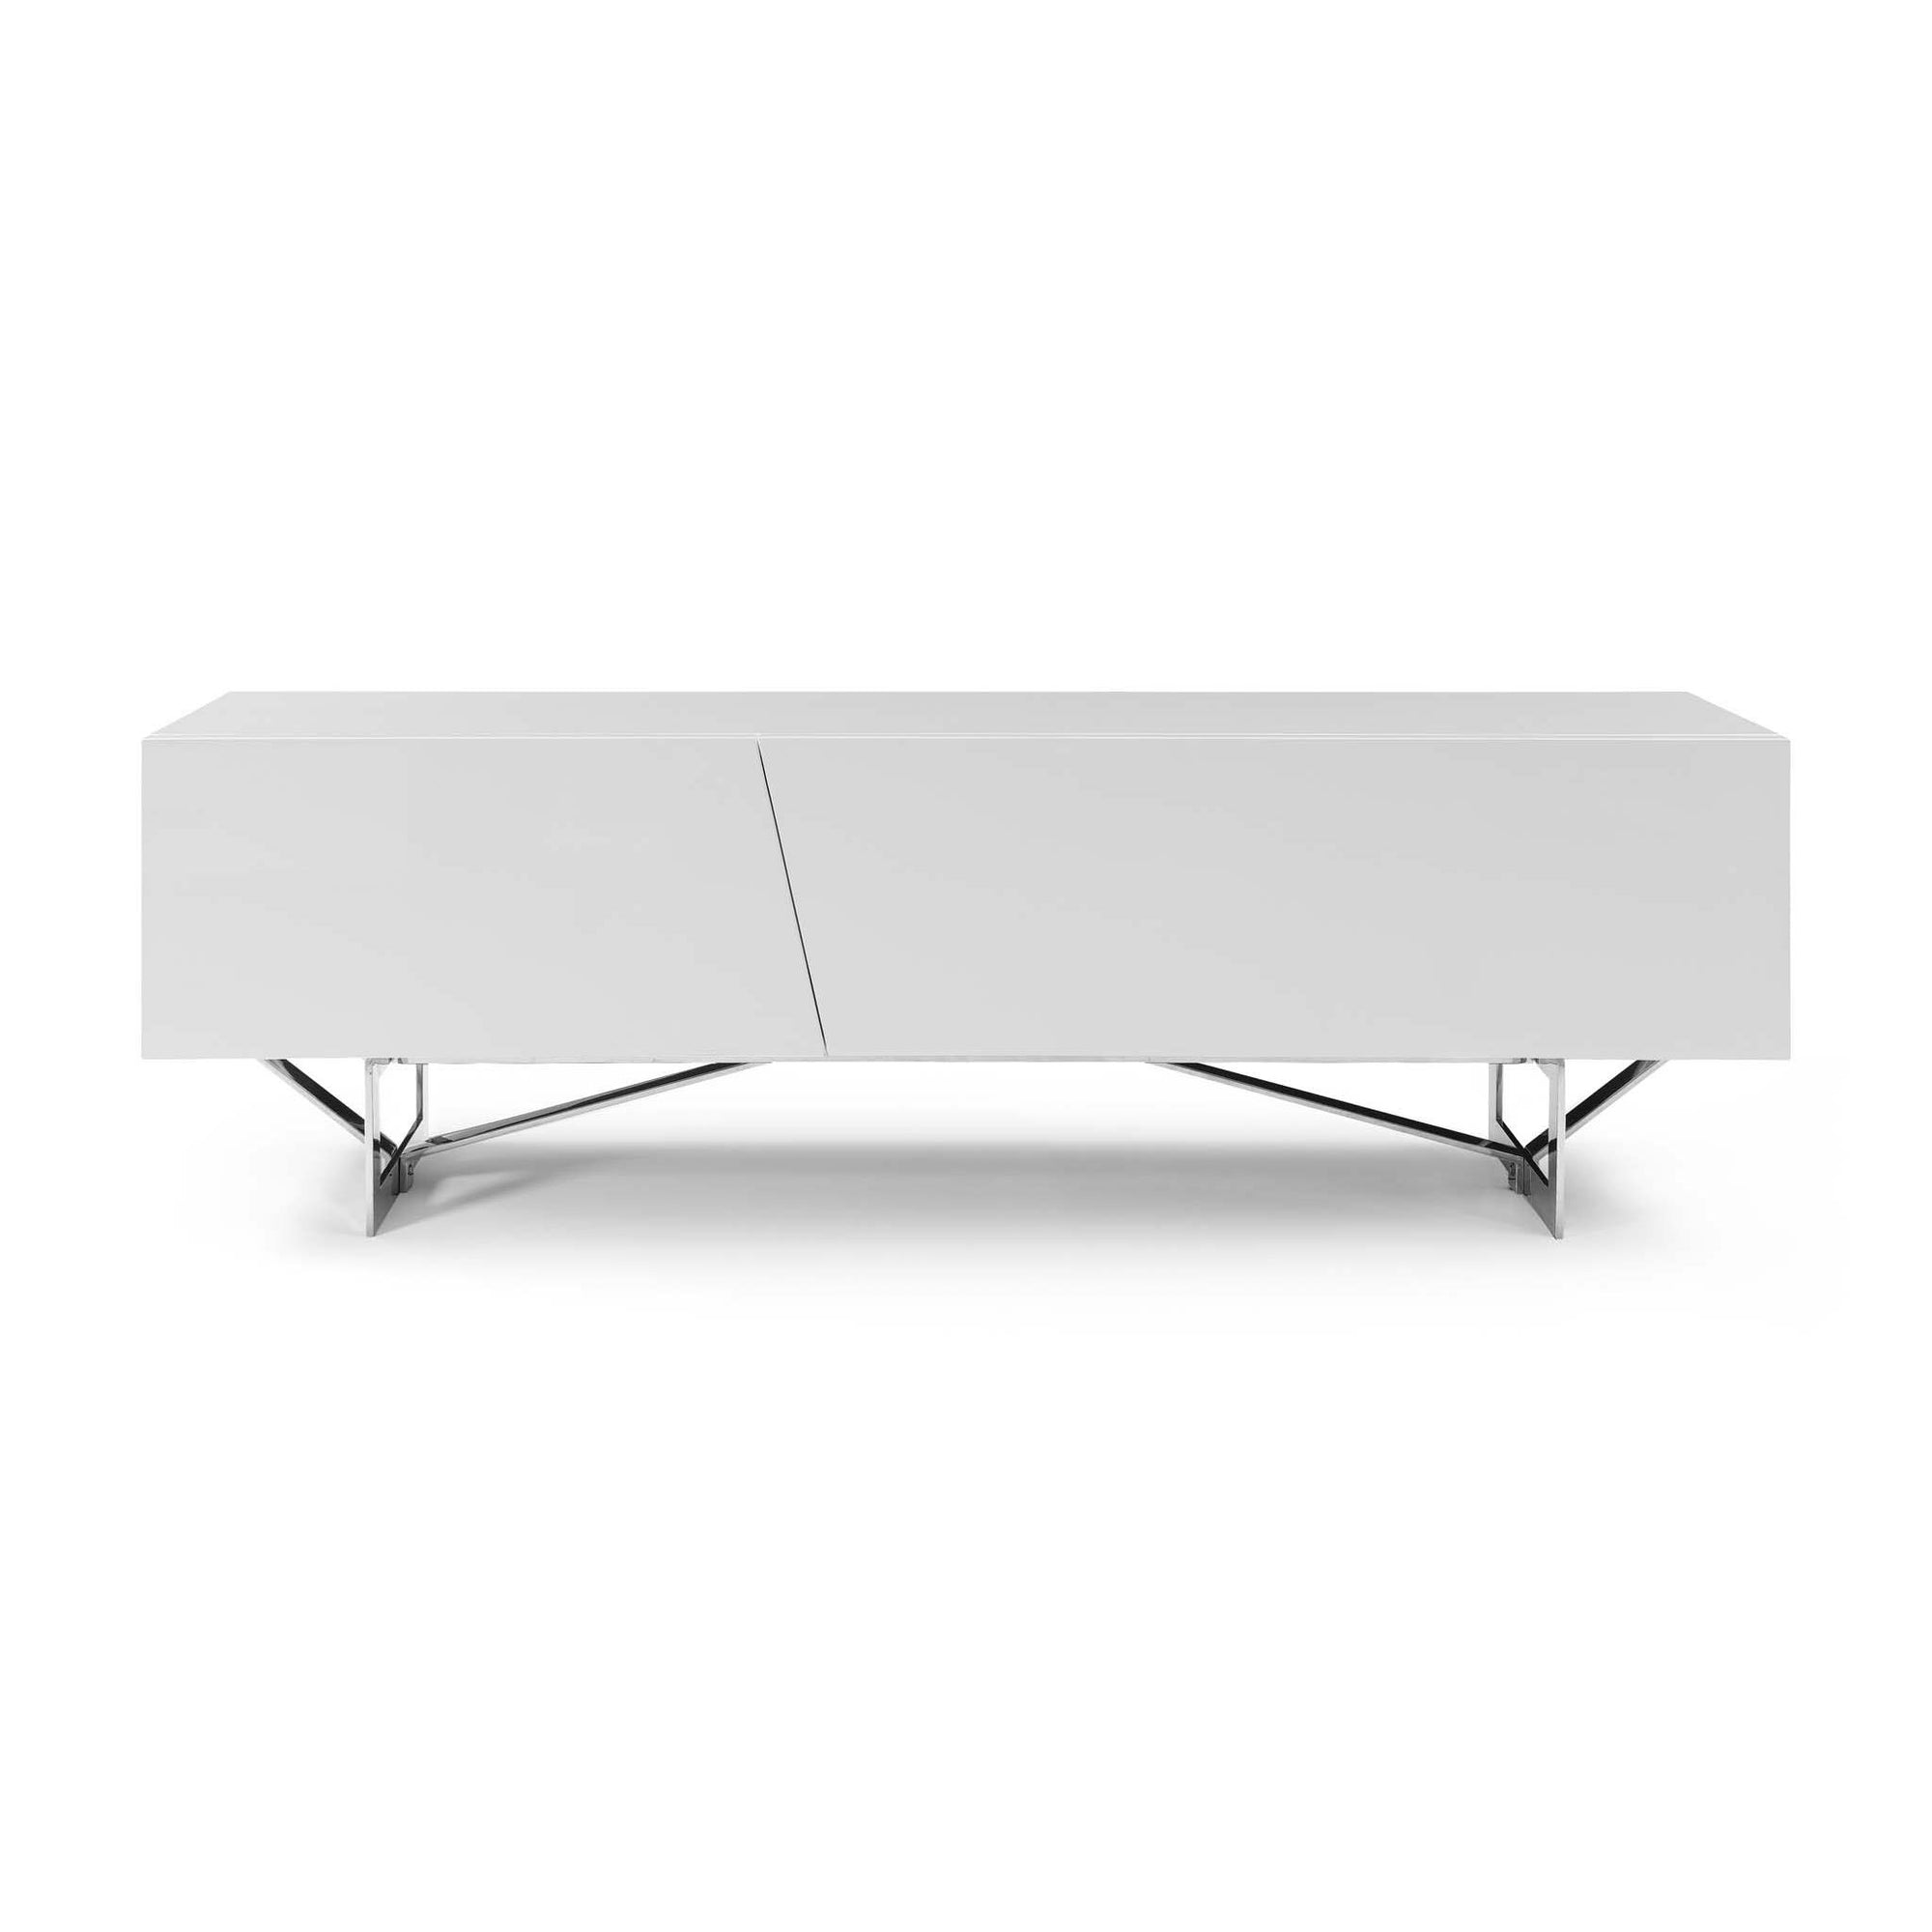 Bellini-Saleen TV Stand Gloss W/ Stainless Steel Legs-TV Stands-MODTEMPO